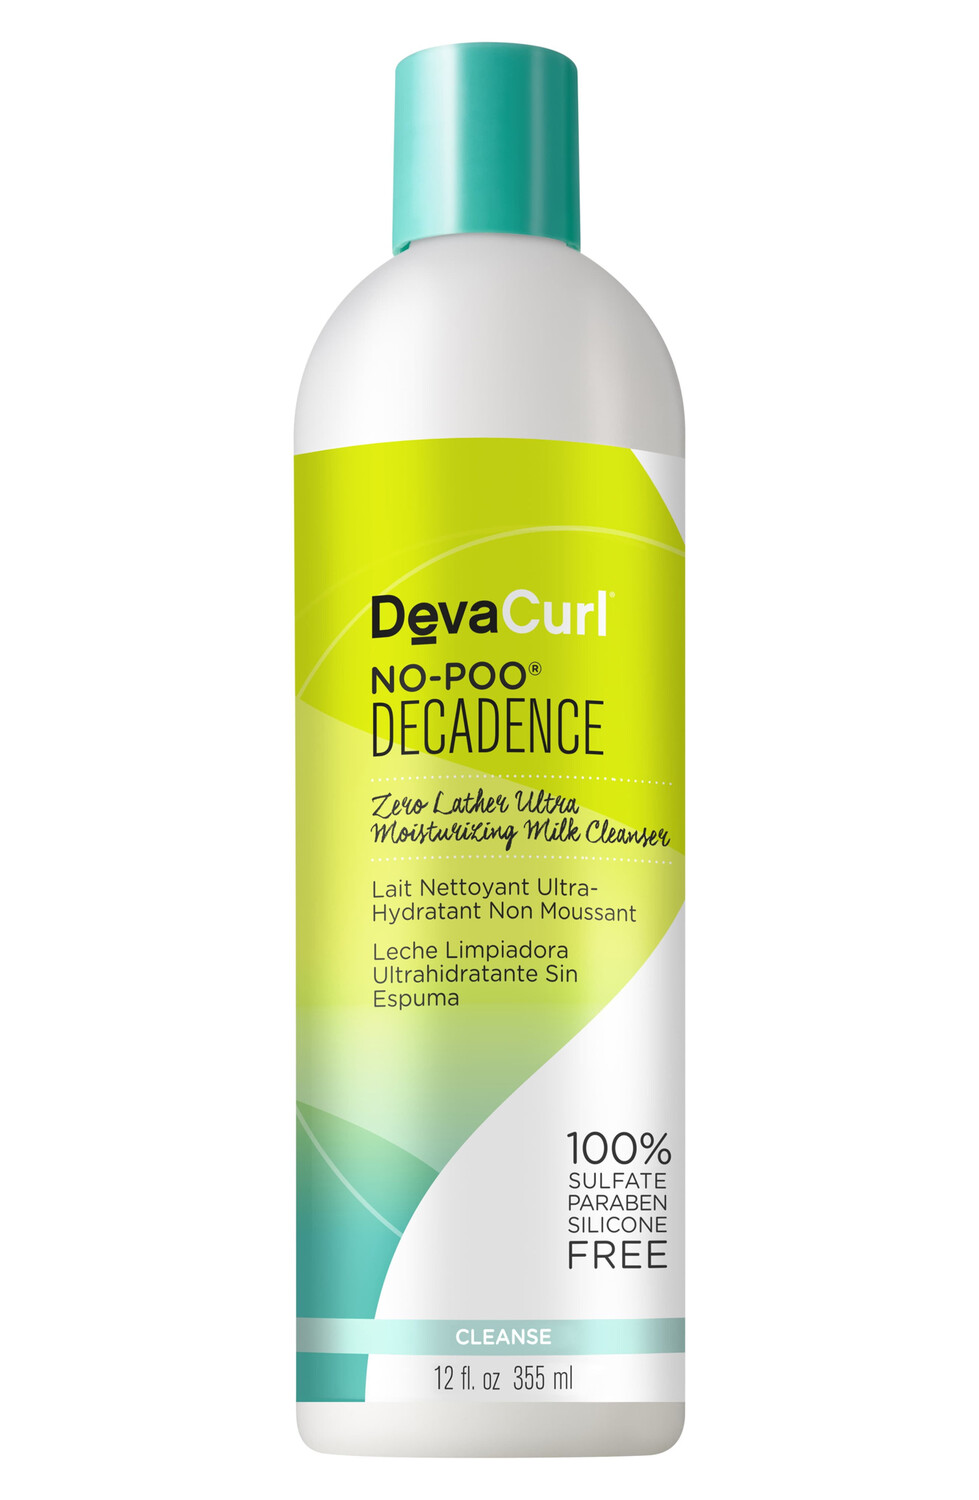 Deva Curl No-Poo Decadence Zero Lather Ultra Moisturizing Milk Cleanser